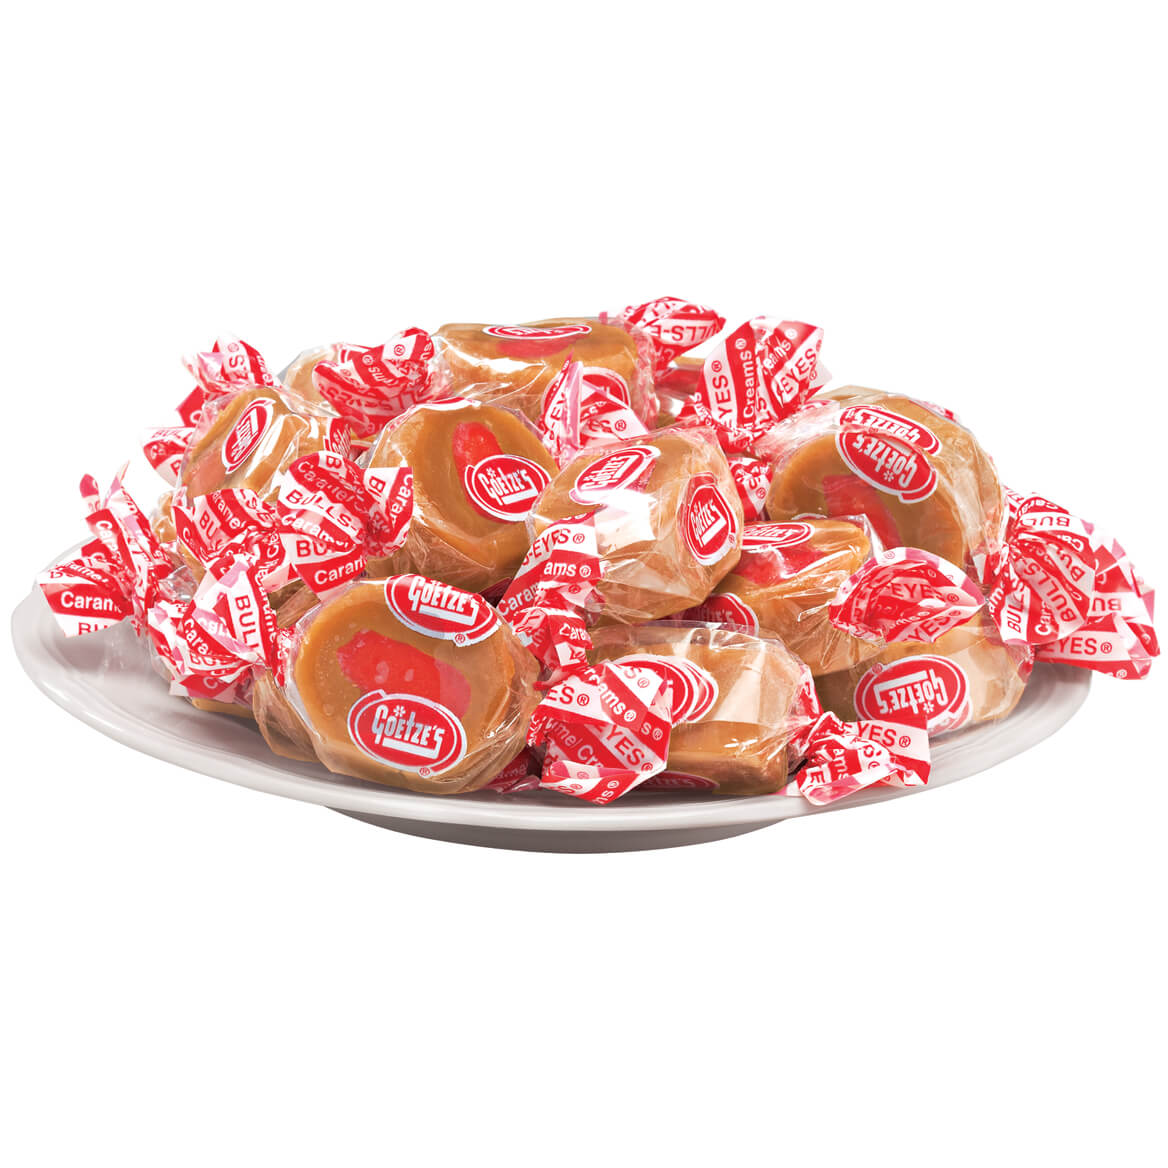 Apple Caramel Creams, 11 oz.-352757